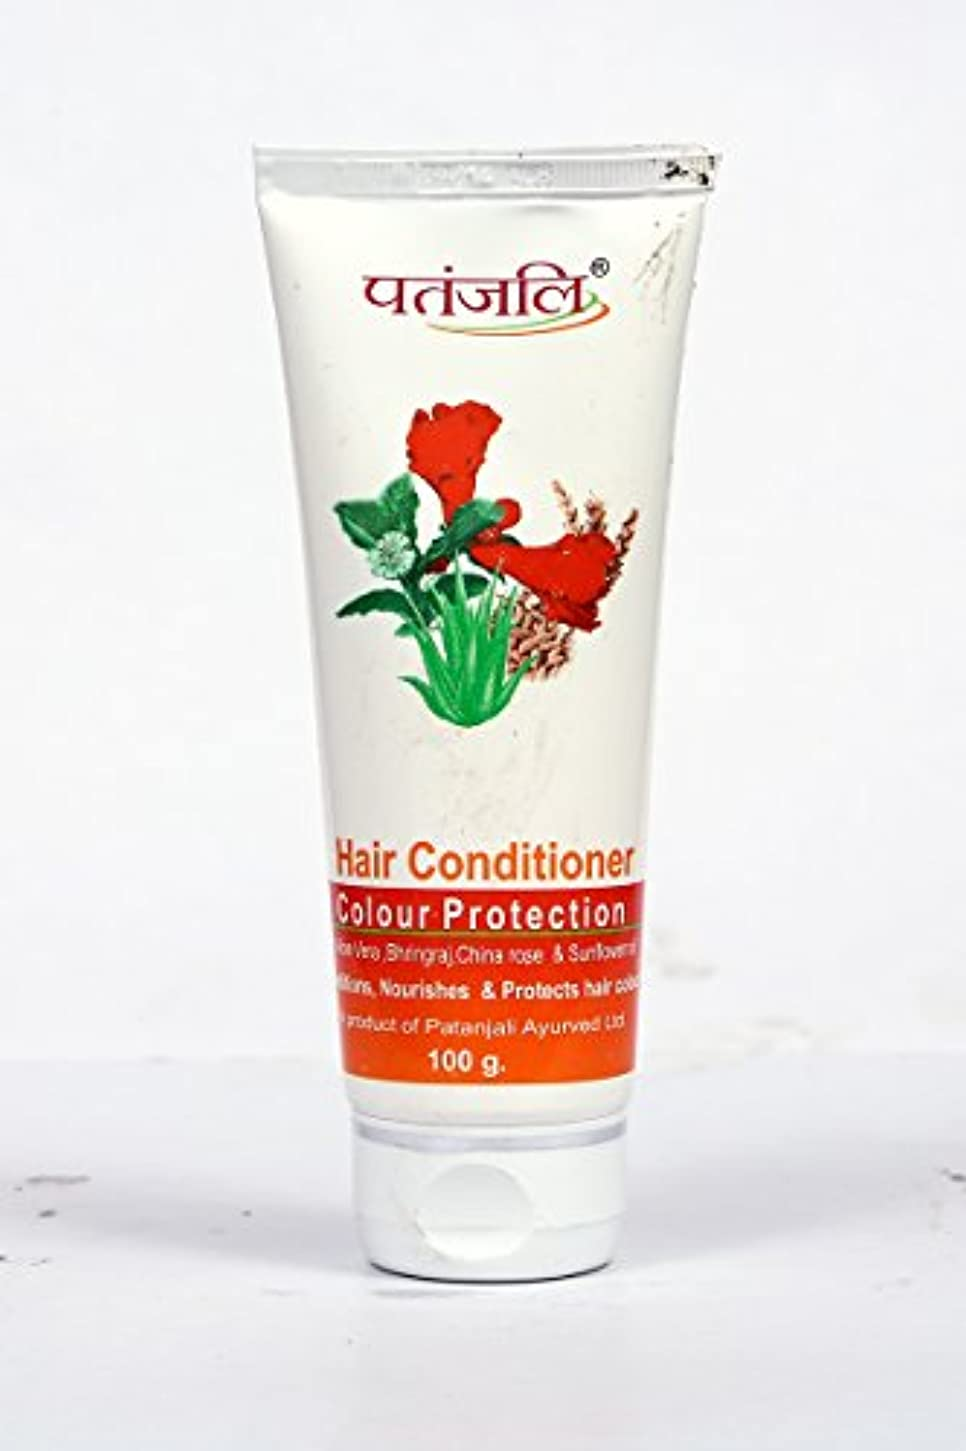 名門表示呪いPatanjali Hair Conditioner Colour Protection, 100g